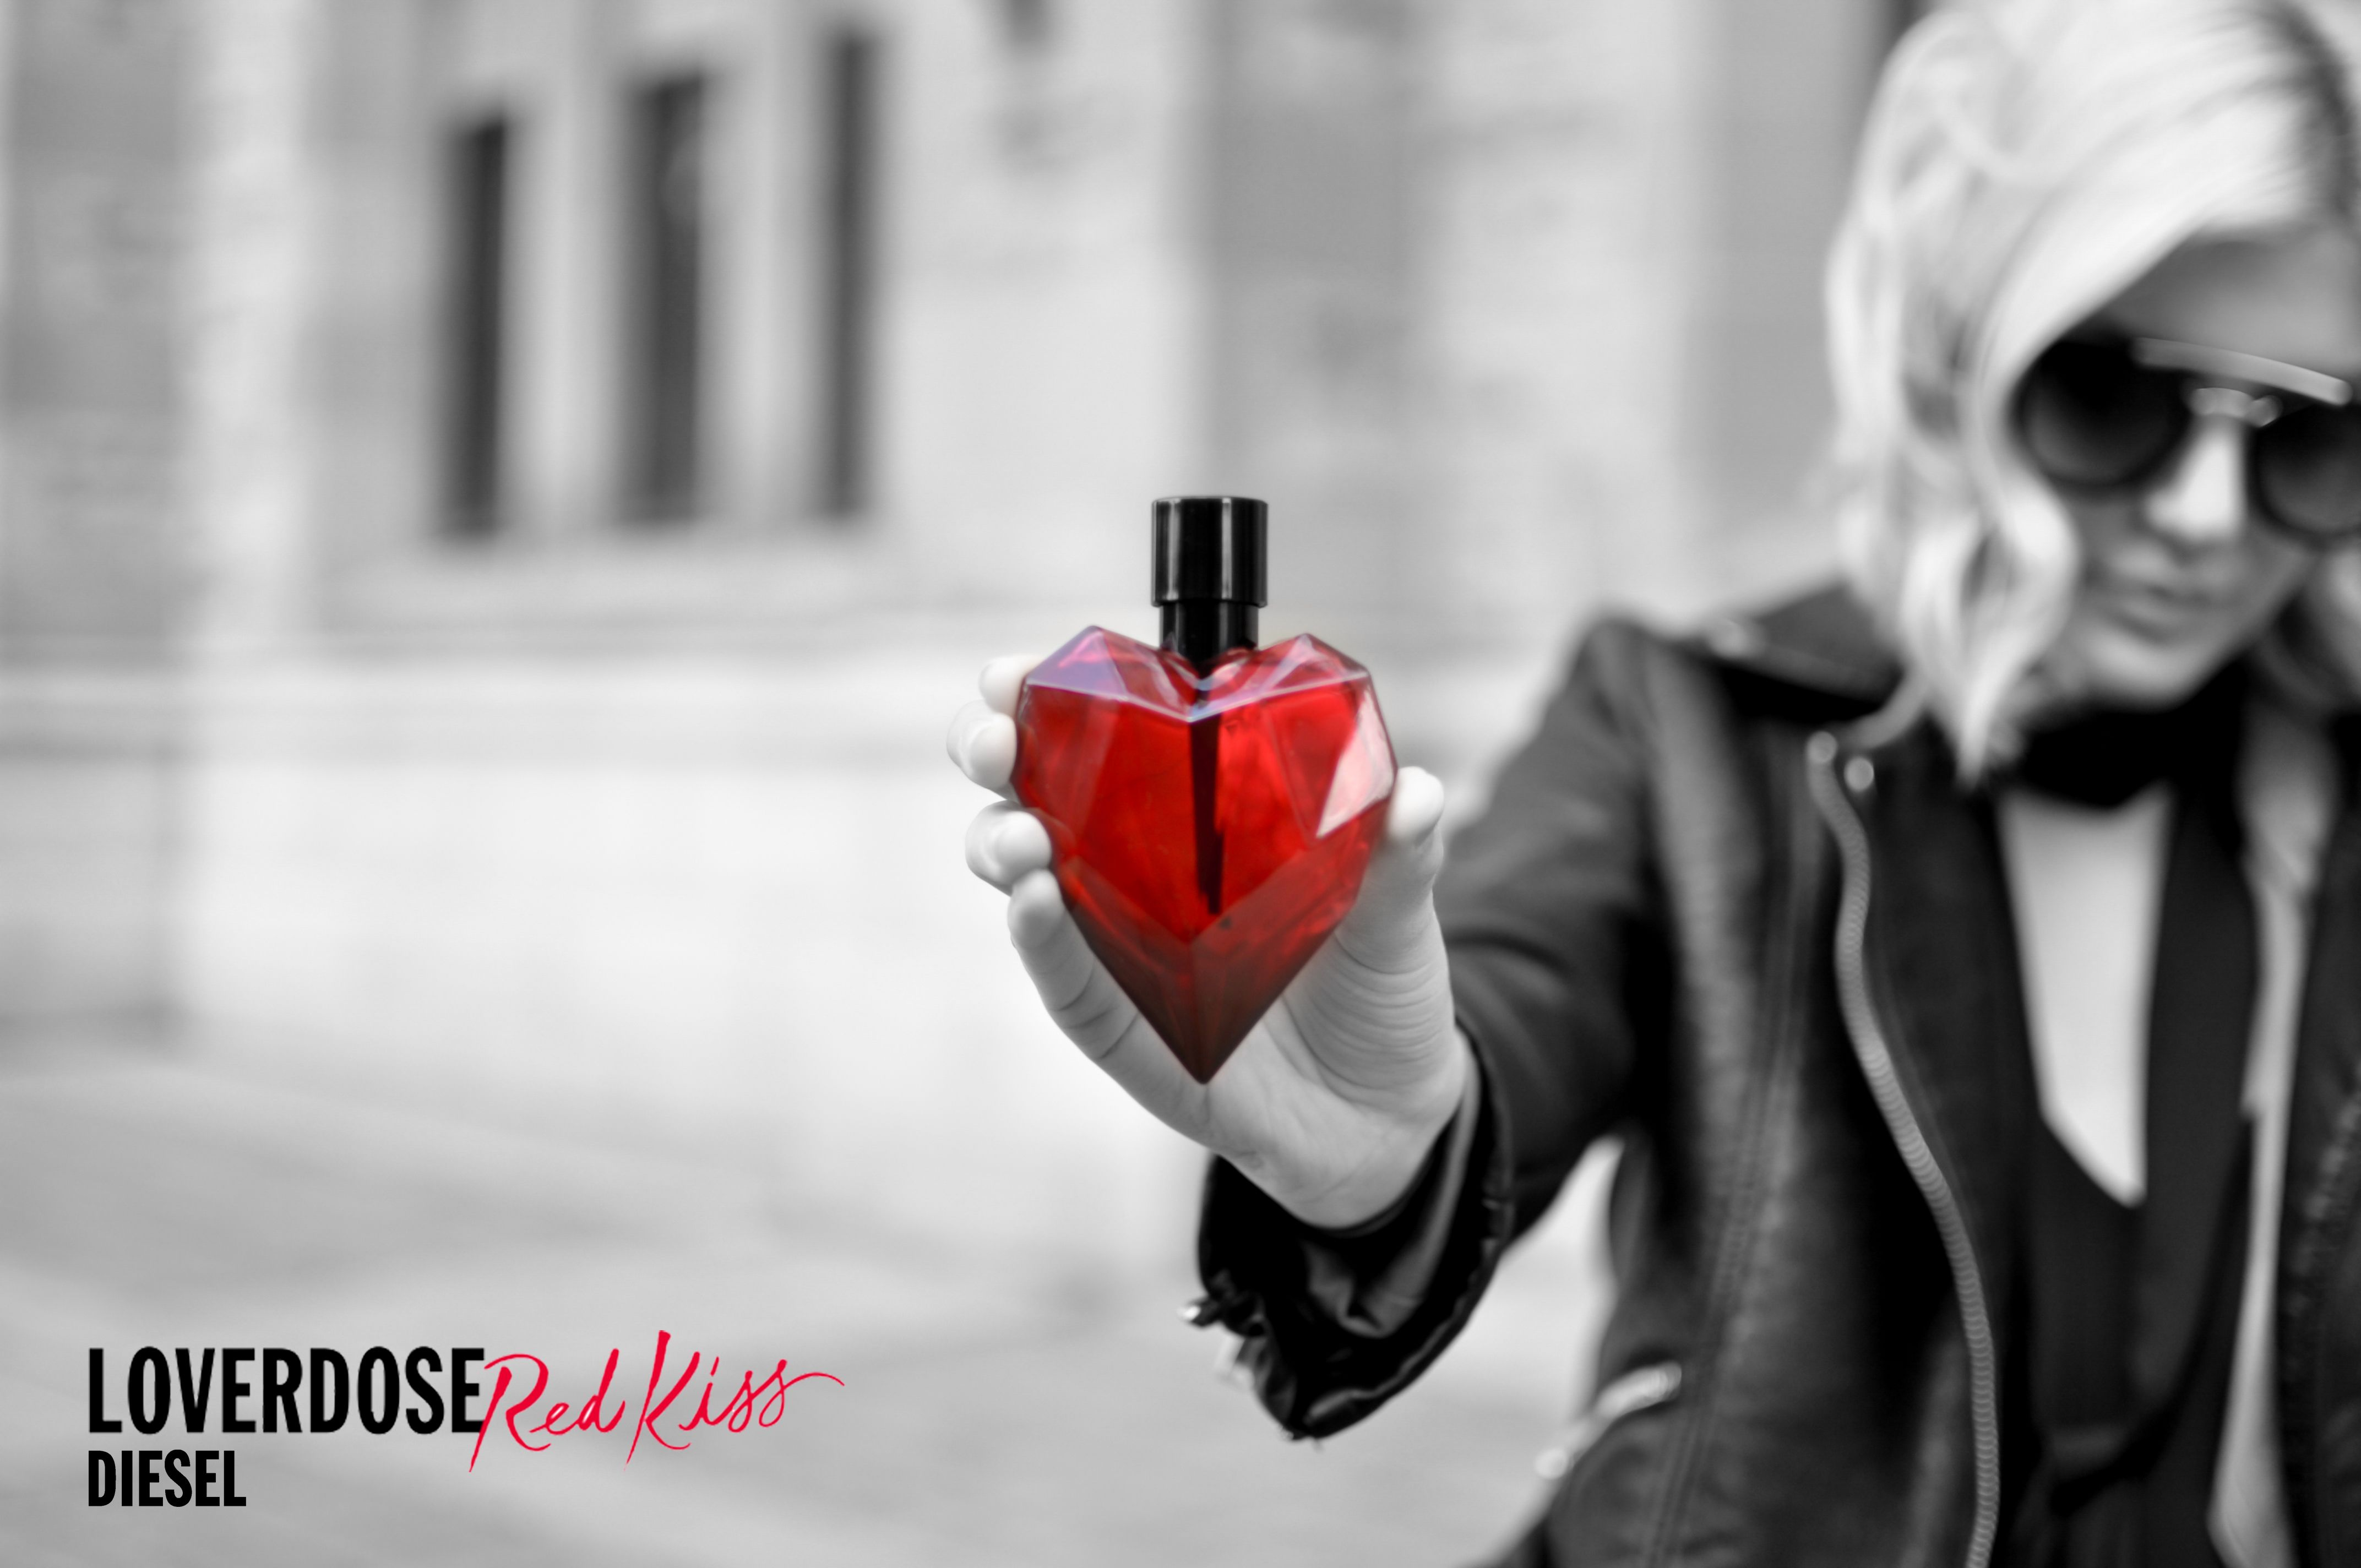 Loverdose Red Kiss Diesel Parfums I Loverdose Red Kiss Kiss Red